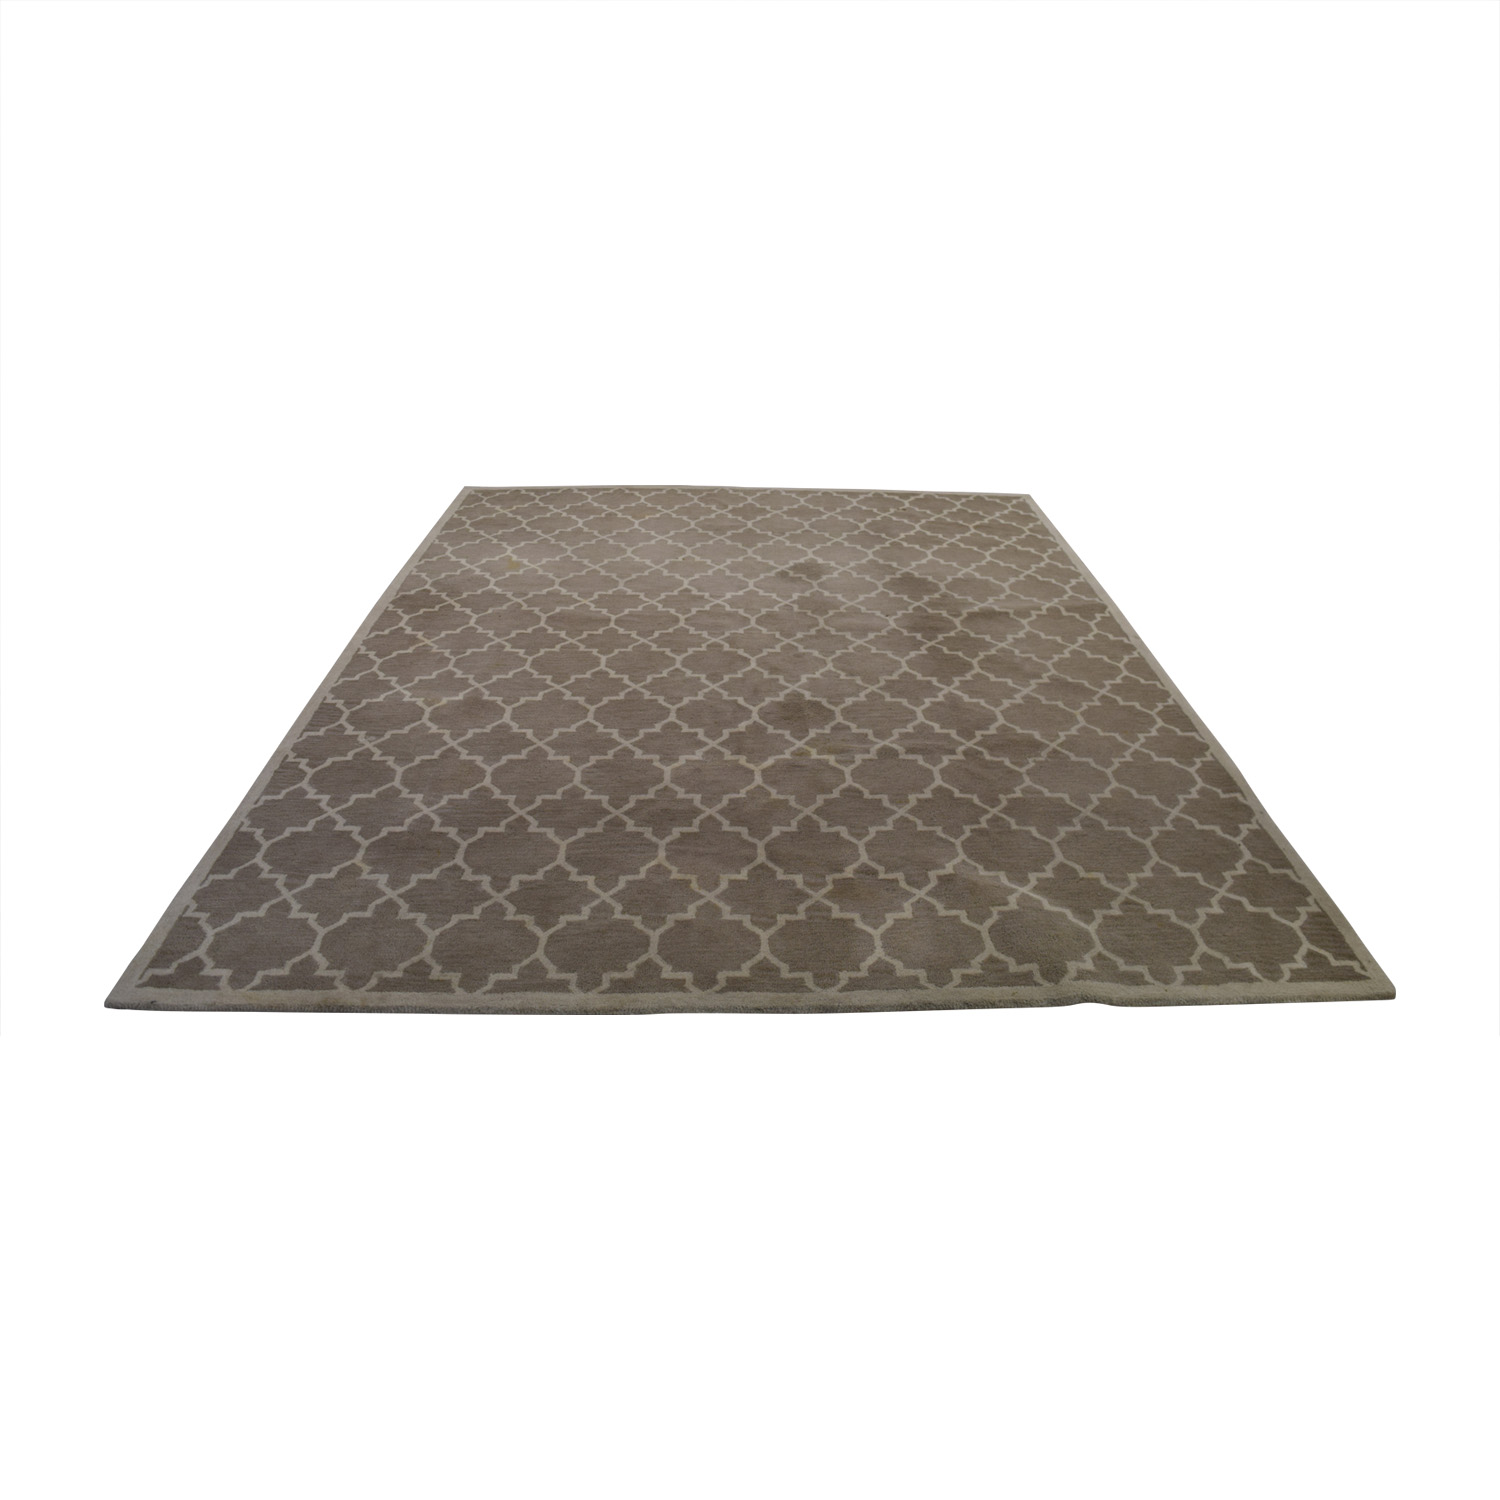 shop Crate & Barrel Crate & Barrel Wool Lattice Beige Pattern Rug online